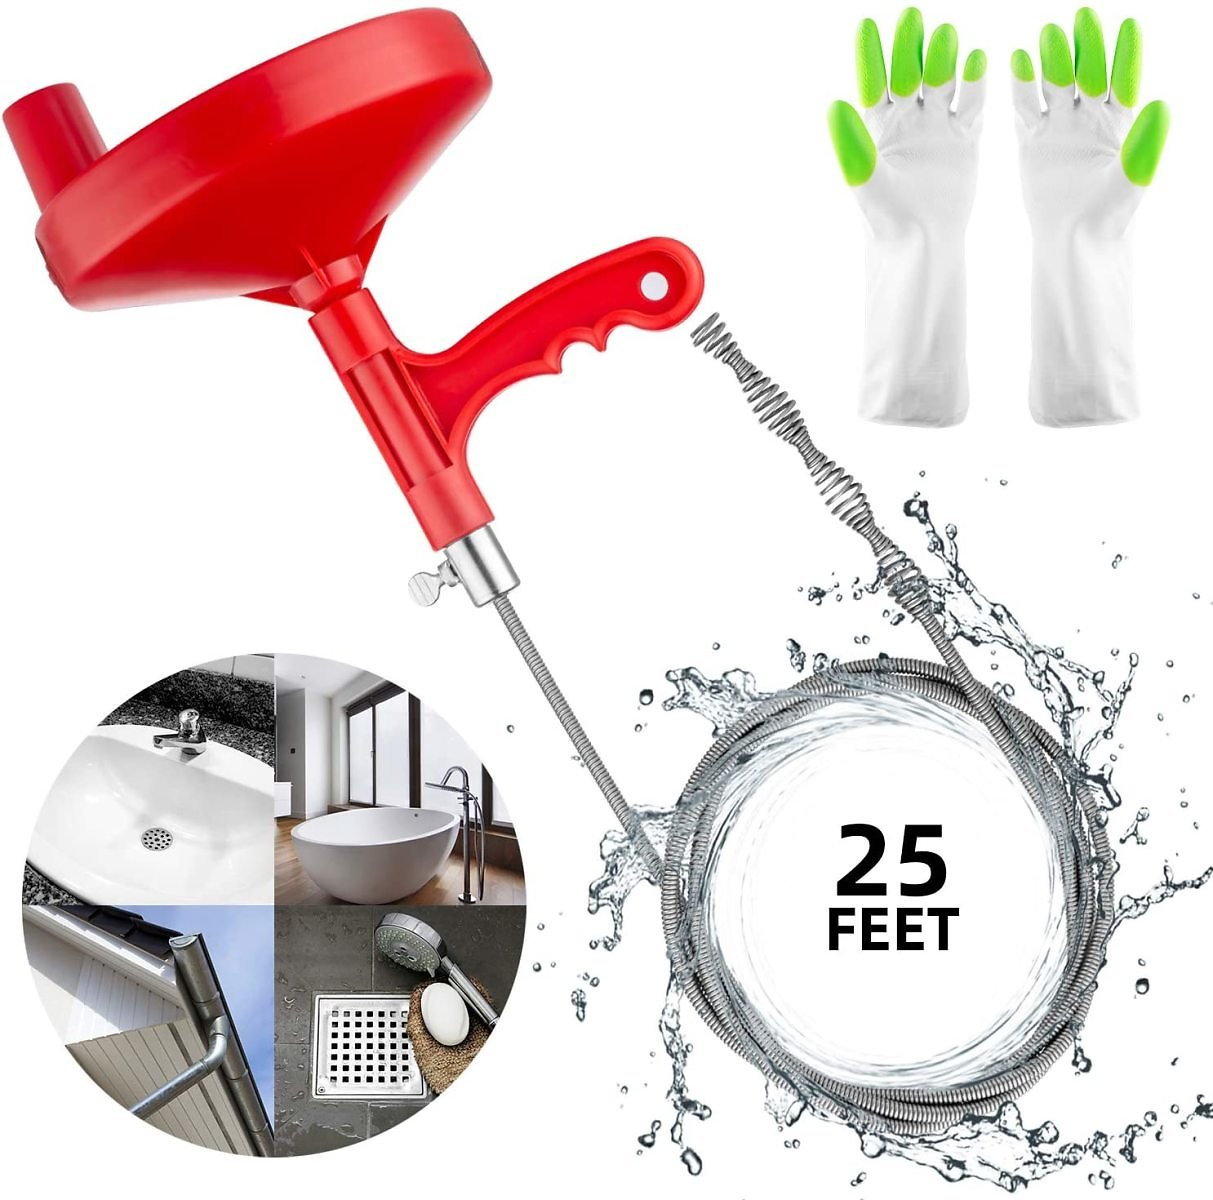 Oriflame 25 Feet Plumbing Snake Drain Auger Sink Snake Pipe Drain Cleaner for Bathroom Kitchen Sink, Shower Drain, Come with Glo